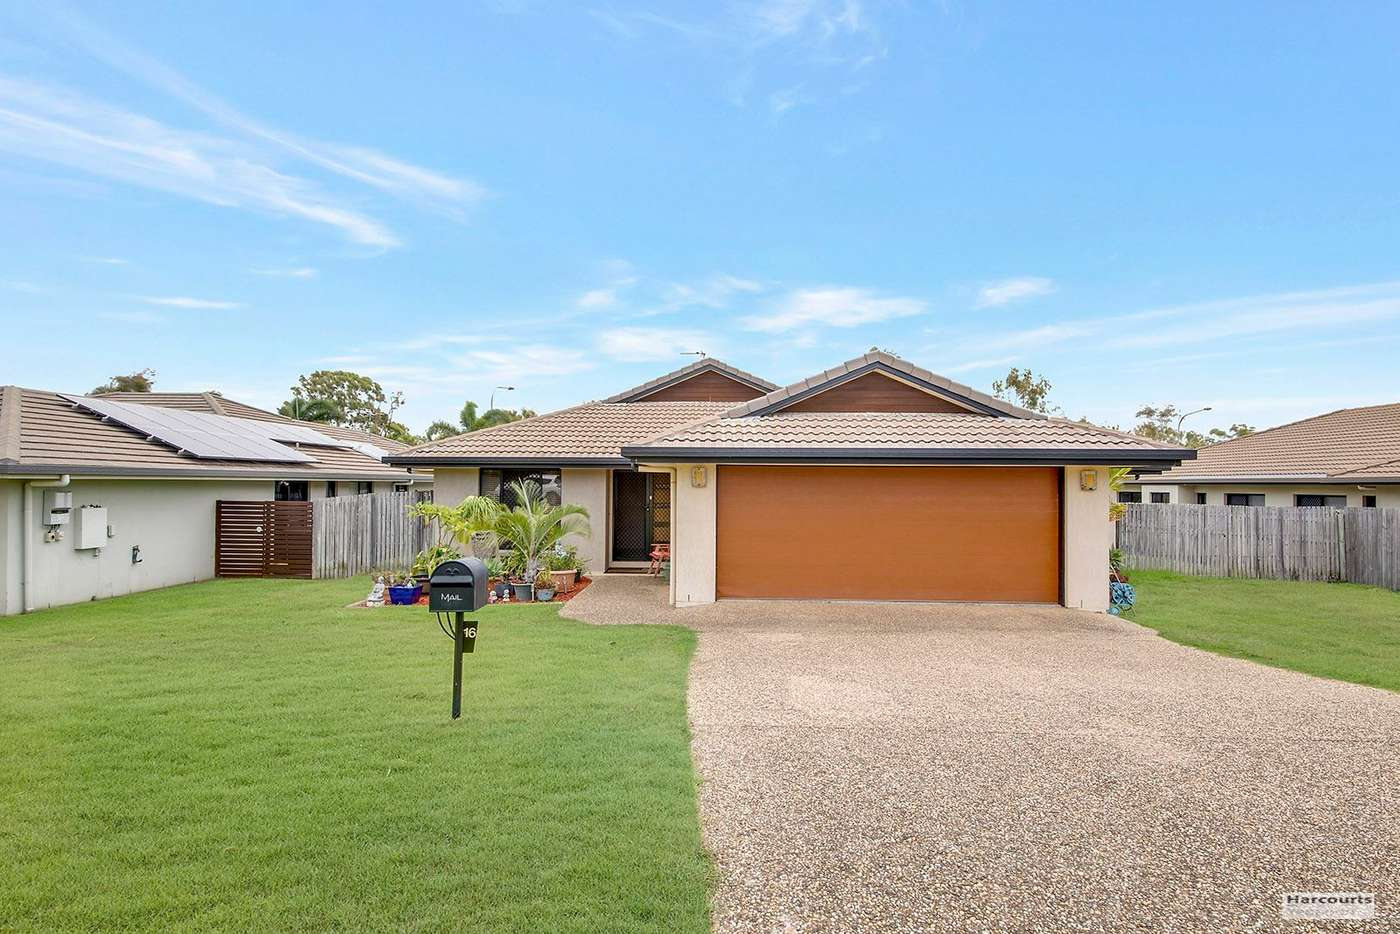 Main view of Homely house listing, 16 Florence Circuit, Taroomball QLD 4703